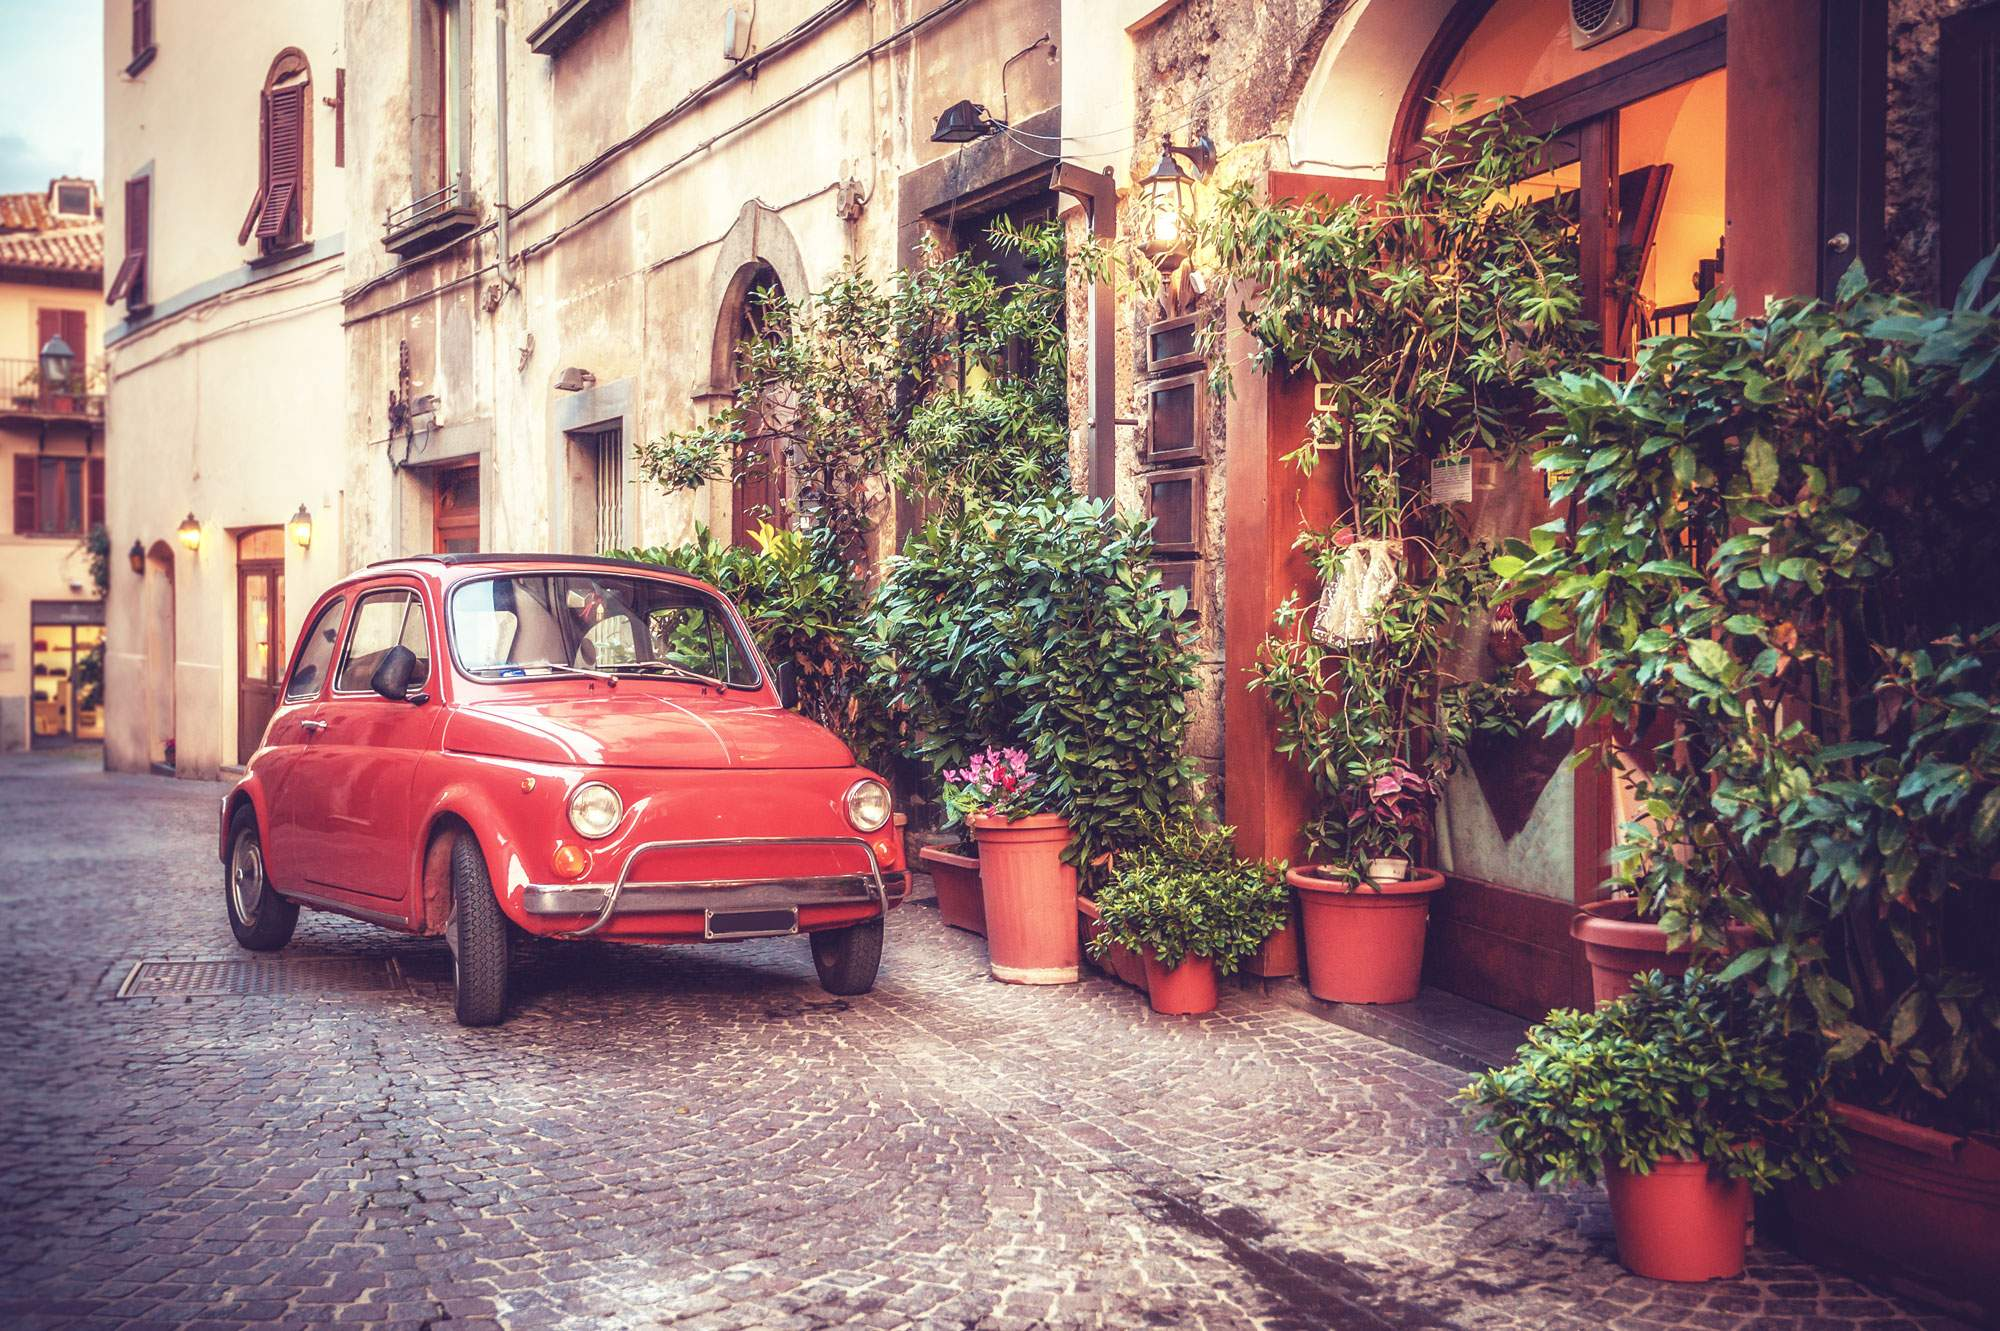 italy-roadtrip-driving-old-car-town-road